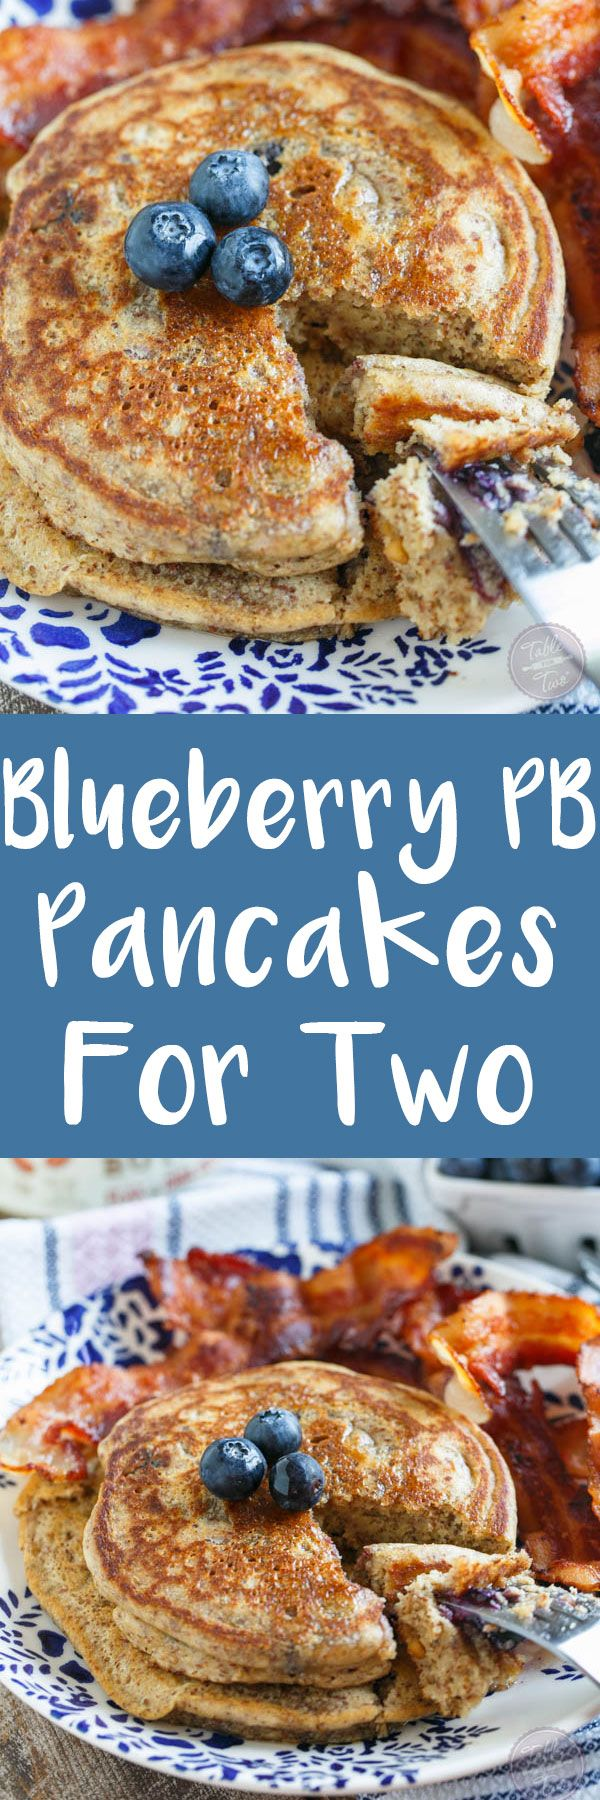 Blueberry peanut butter pancakes for two are the perfect breakfast for you and yours! They make just the right amount so you won't be stuck with leftovers and they're gluten-free and bursting full of fresh blueberries!